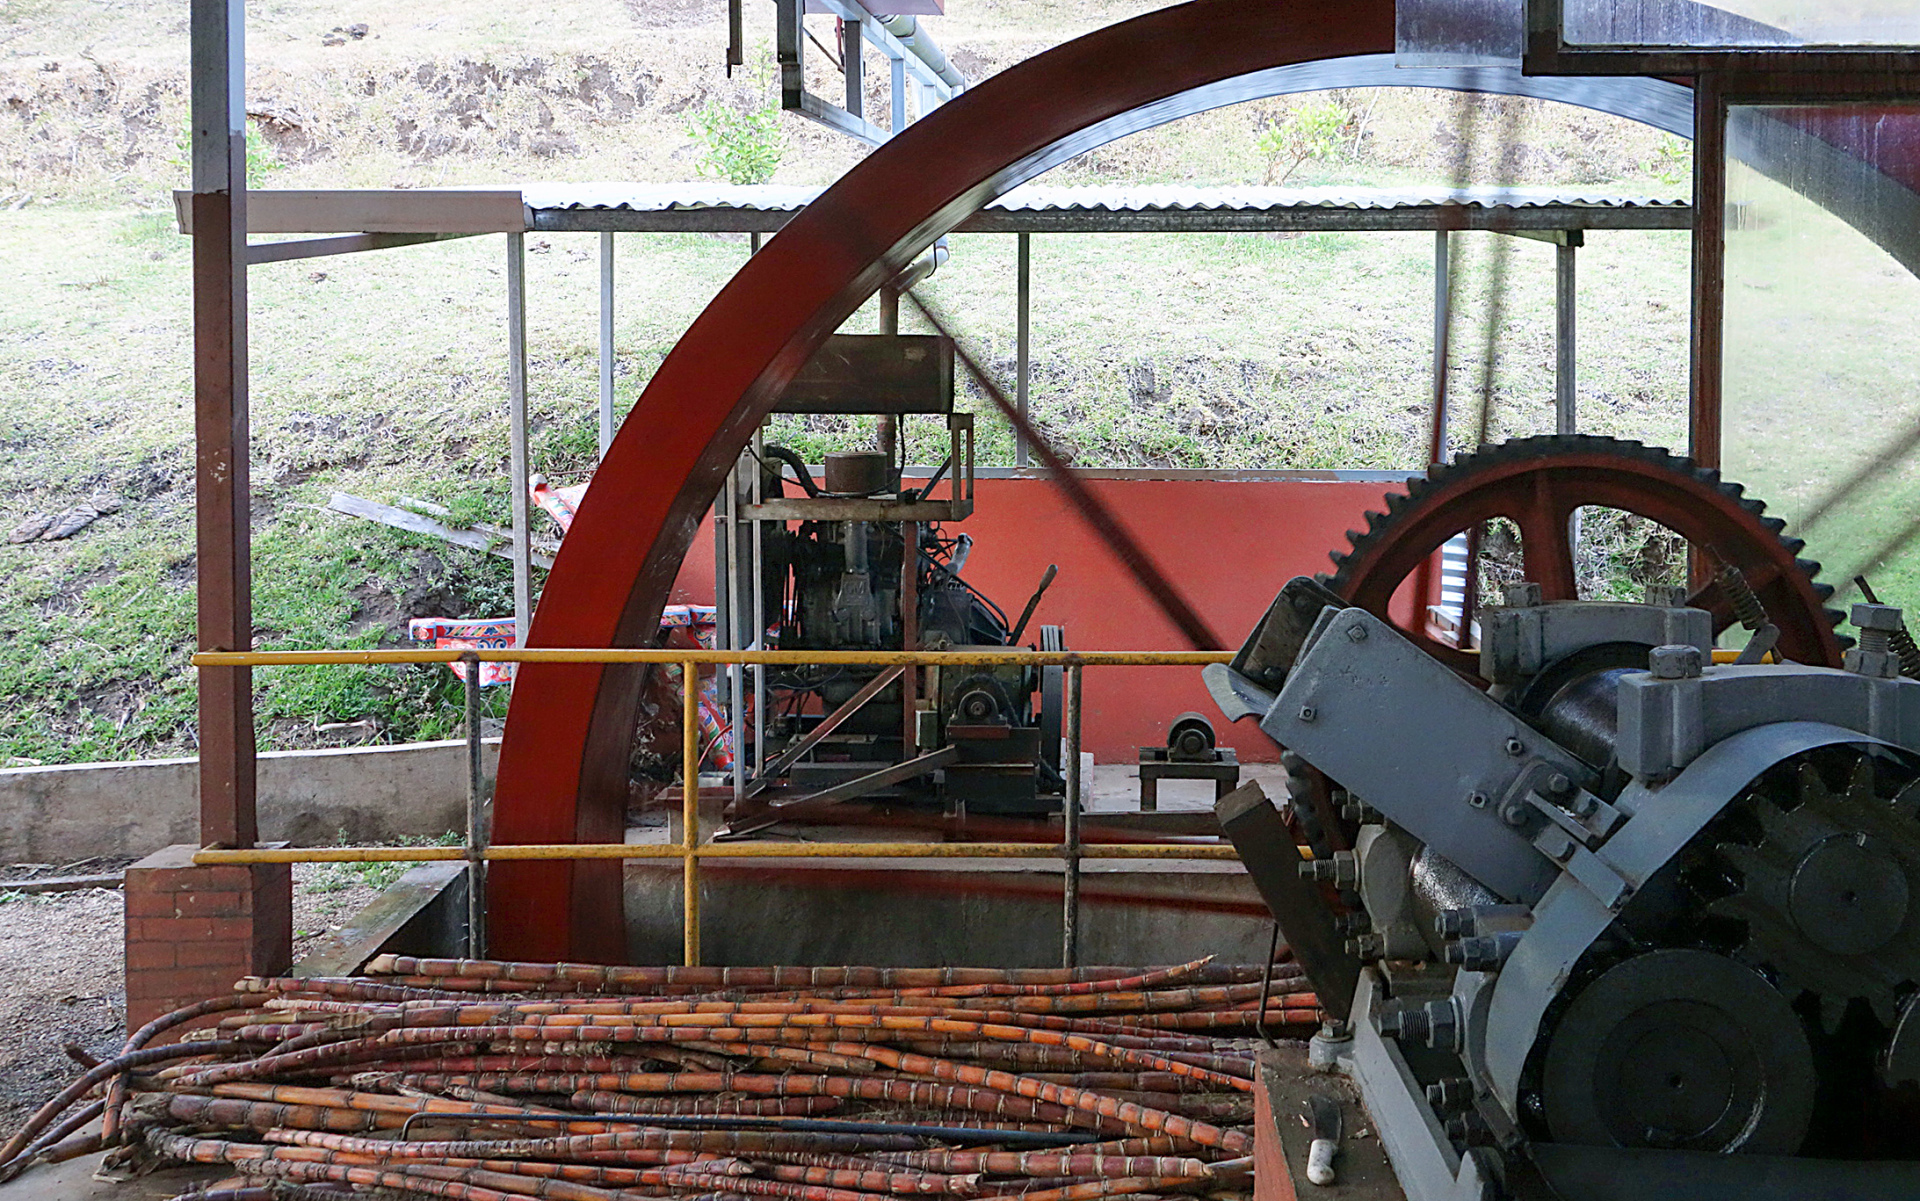 machine used in getting juice from the pulp of sugar cane stems